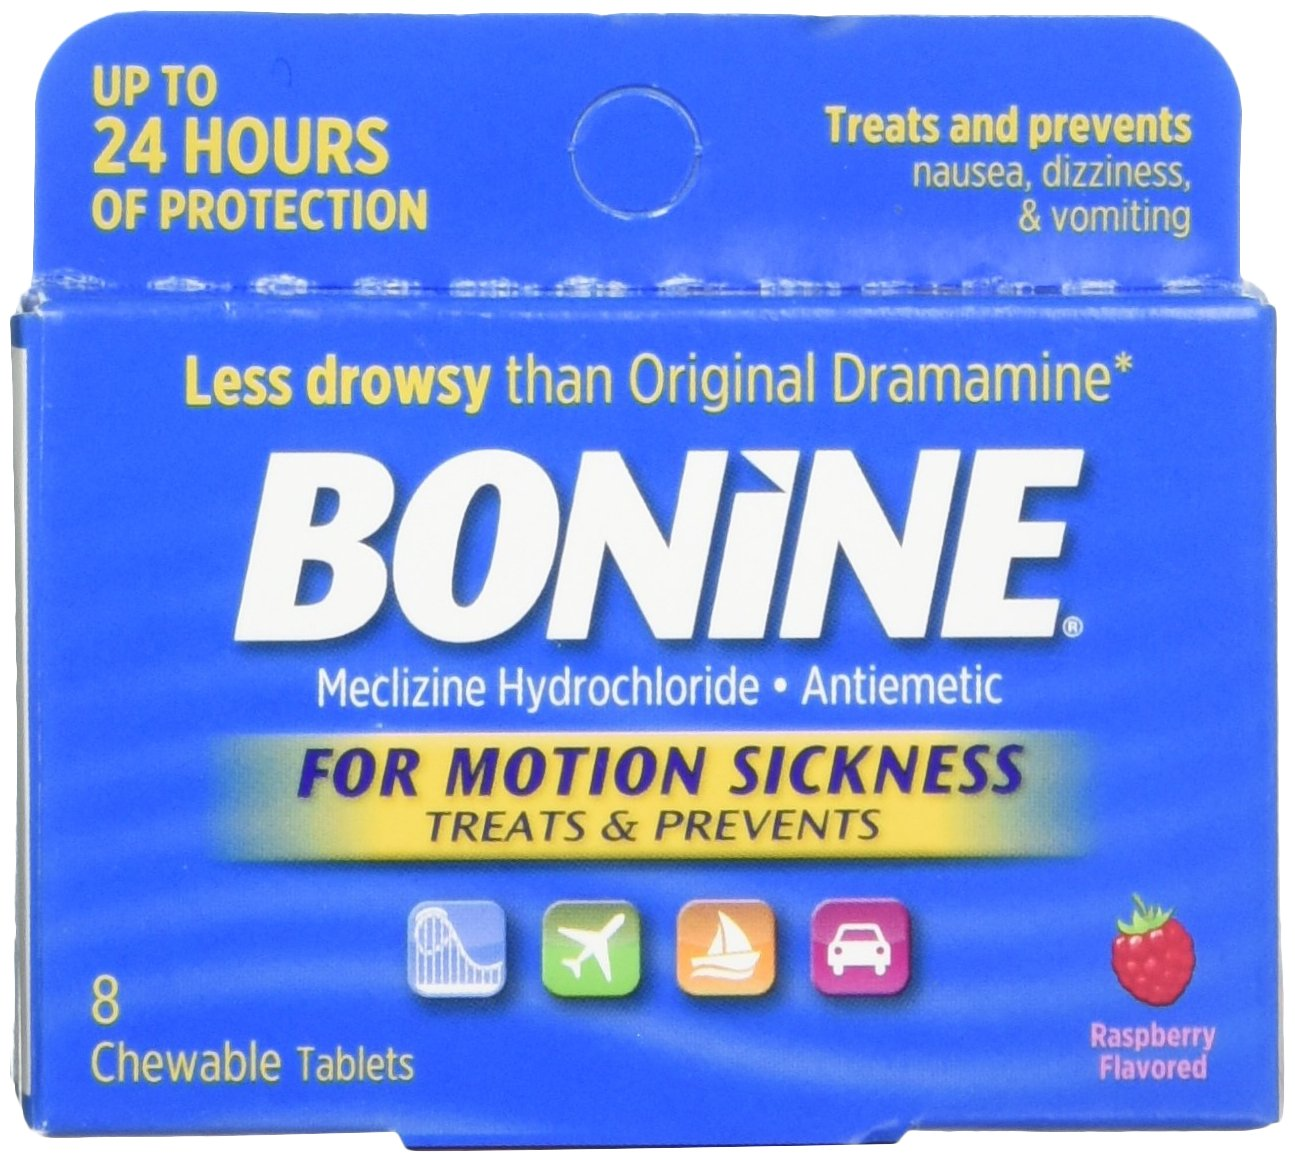 Bonine for Motion Sickness Chewable Tablets, Raspberry Flavored, 8 Each by Bonine (Image #1)